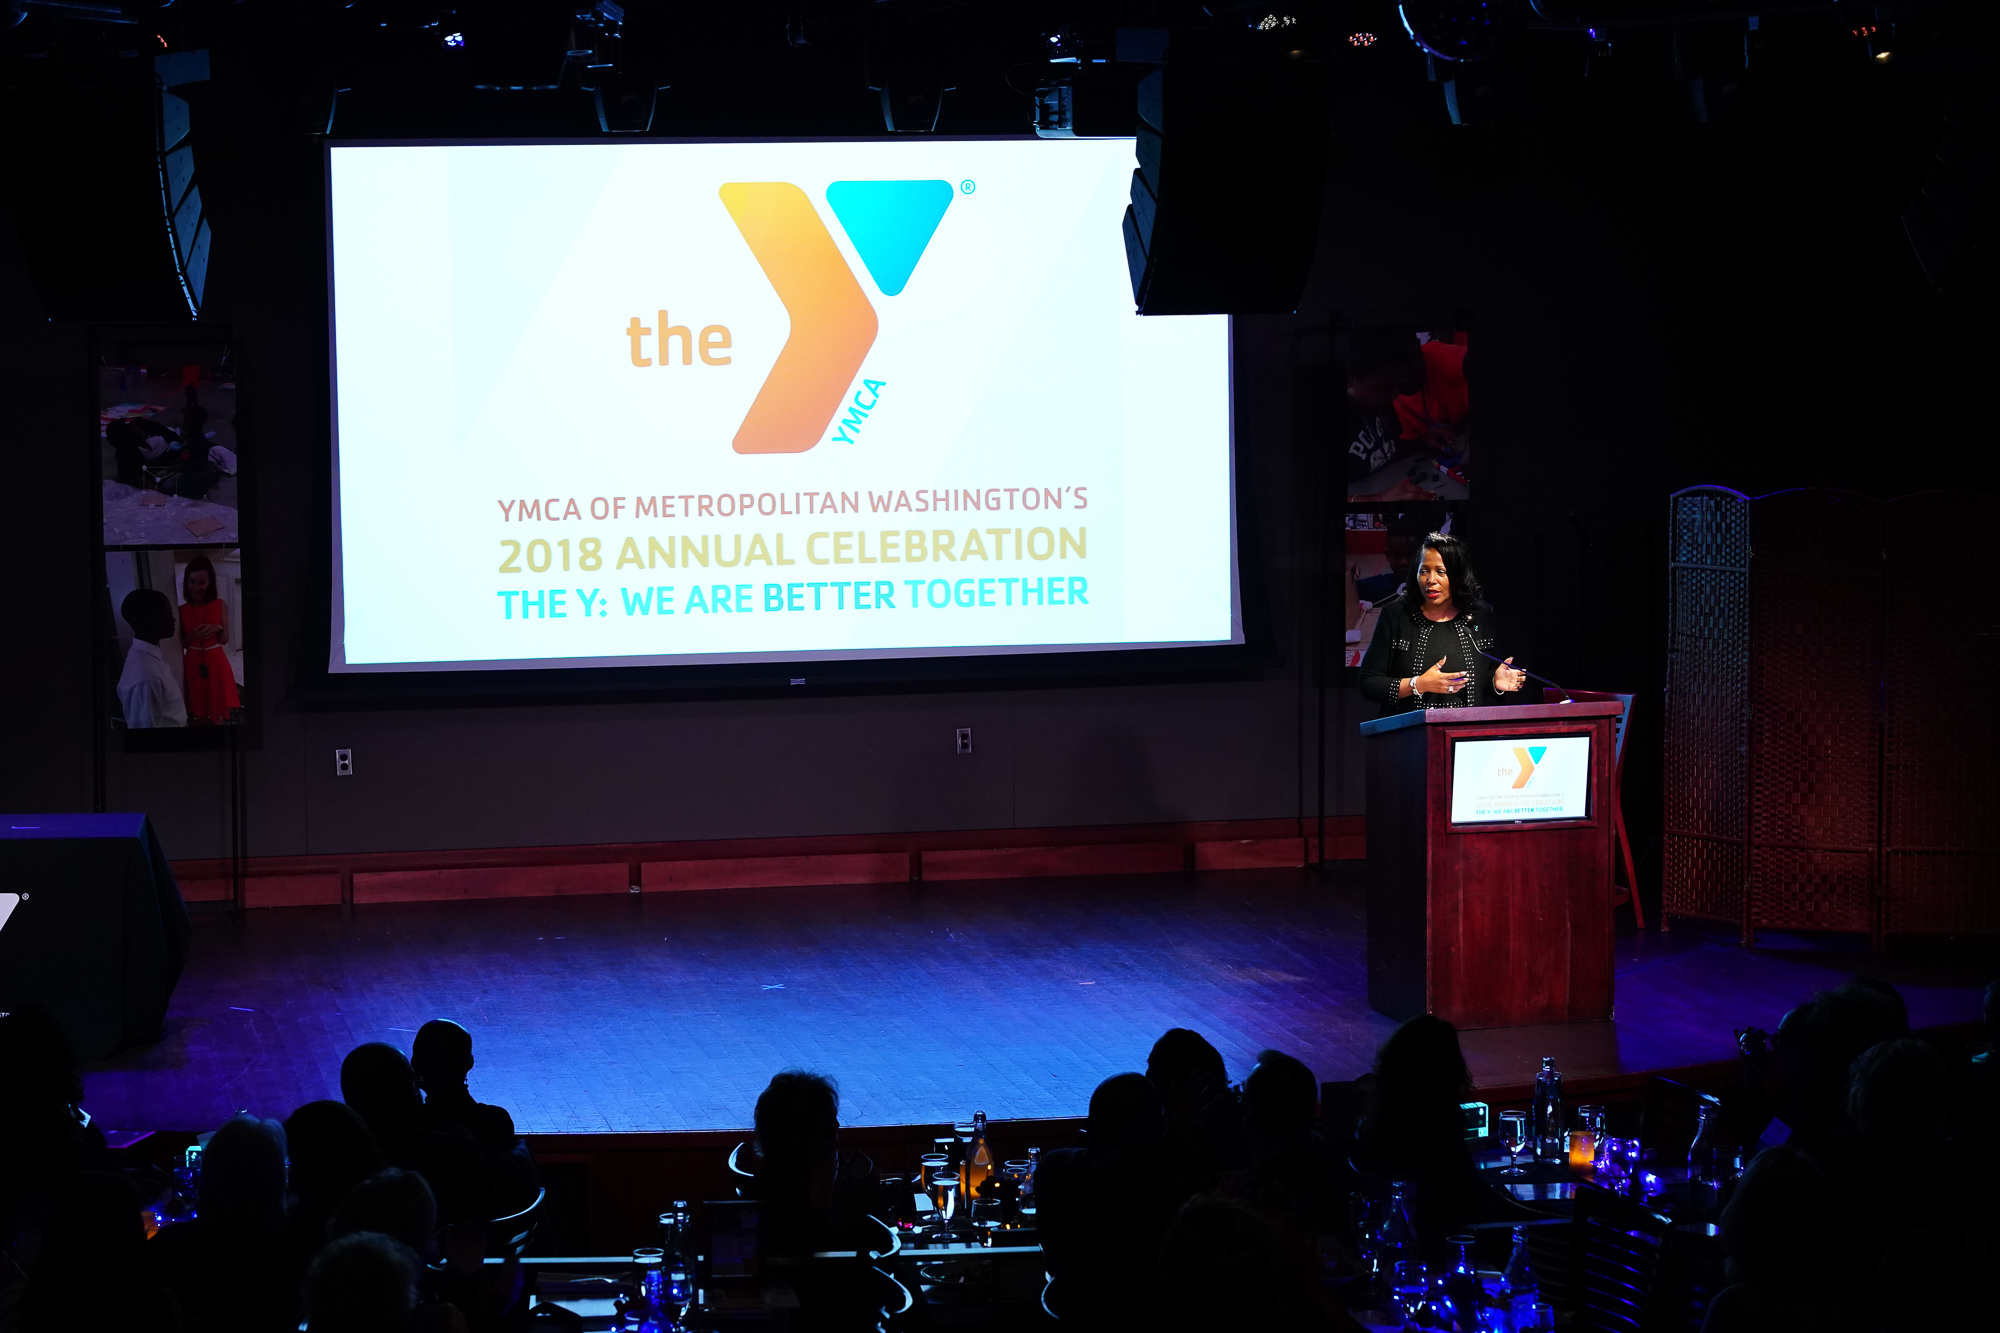 015-Christopher-Jason-Studios-the-hamilton-live-ymca-annual-celebration-the-y-washington-dc-event-photography-angie-reese-hawkins-speaks-to audience.jpg